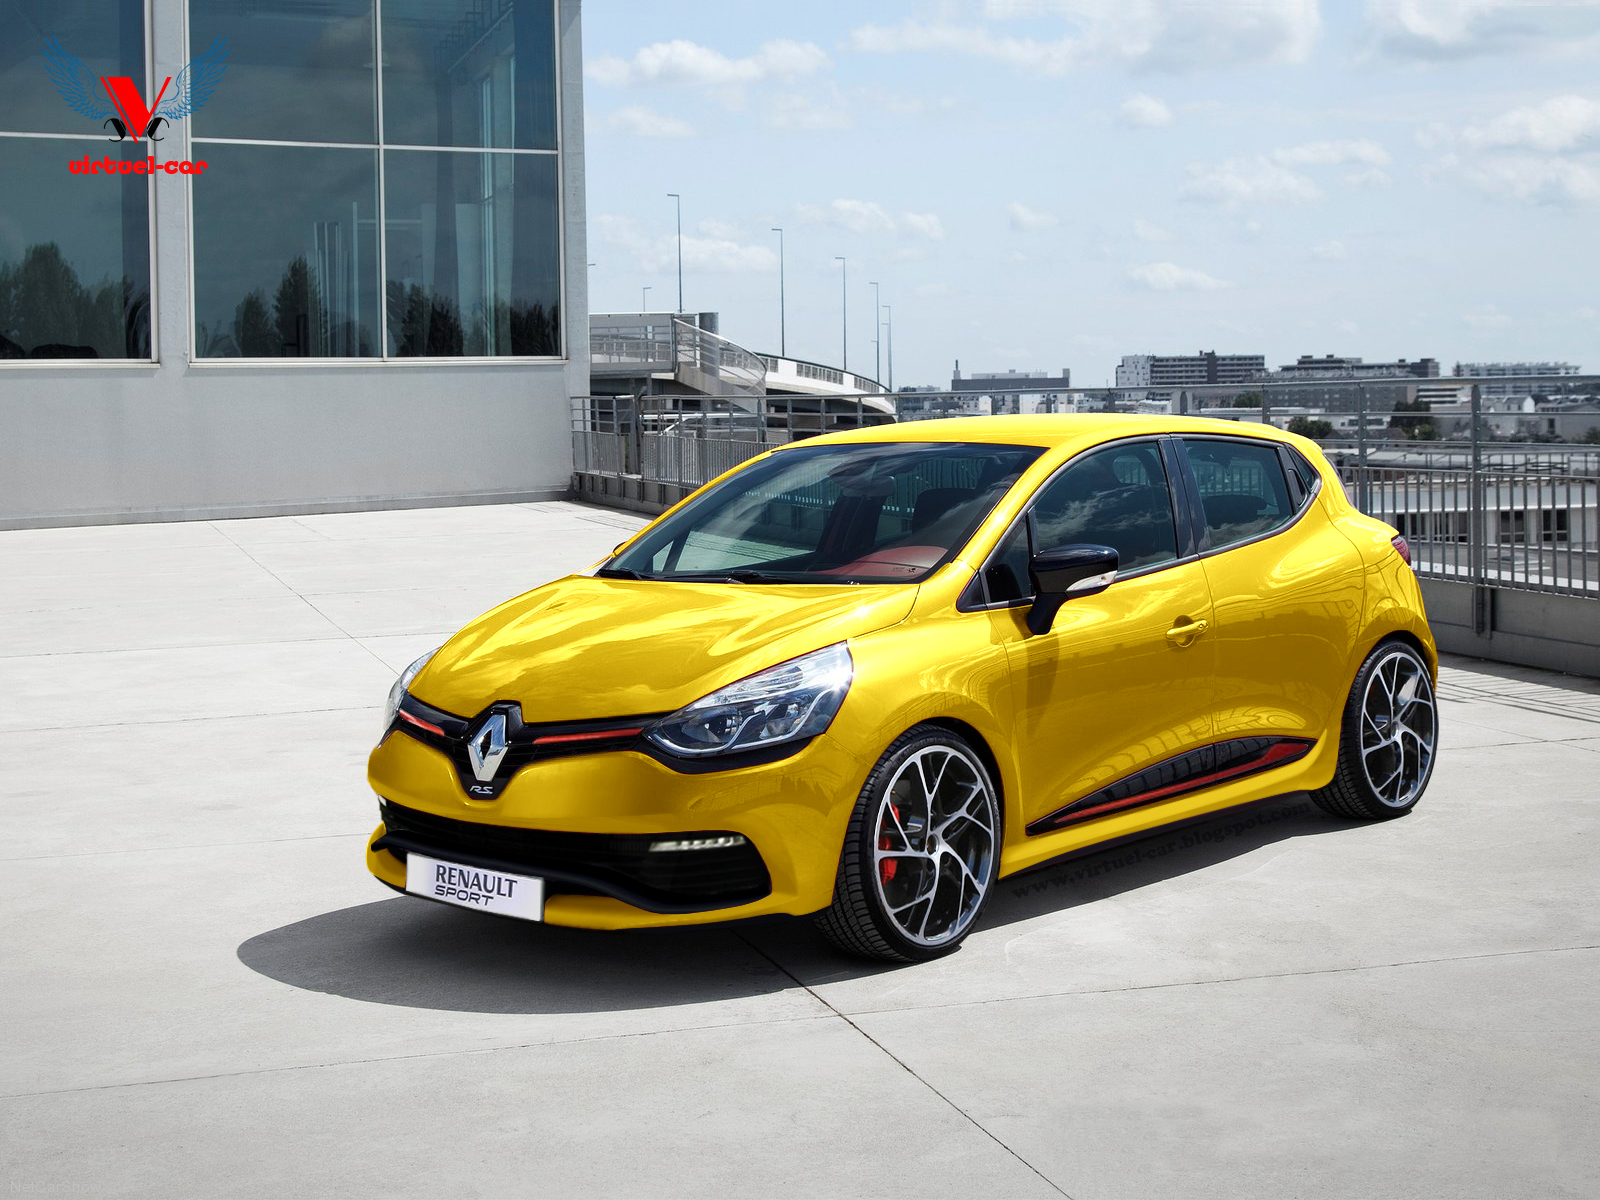 2013 renault clio iii sport pictures information and specs auto. Black Bedroom Furniture Sets. Home Design Ideas